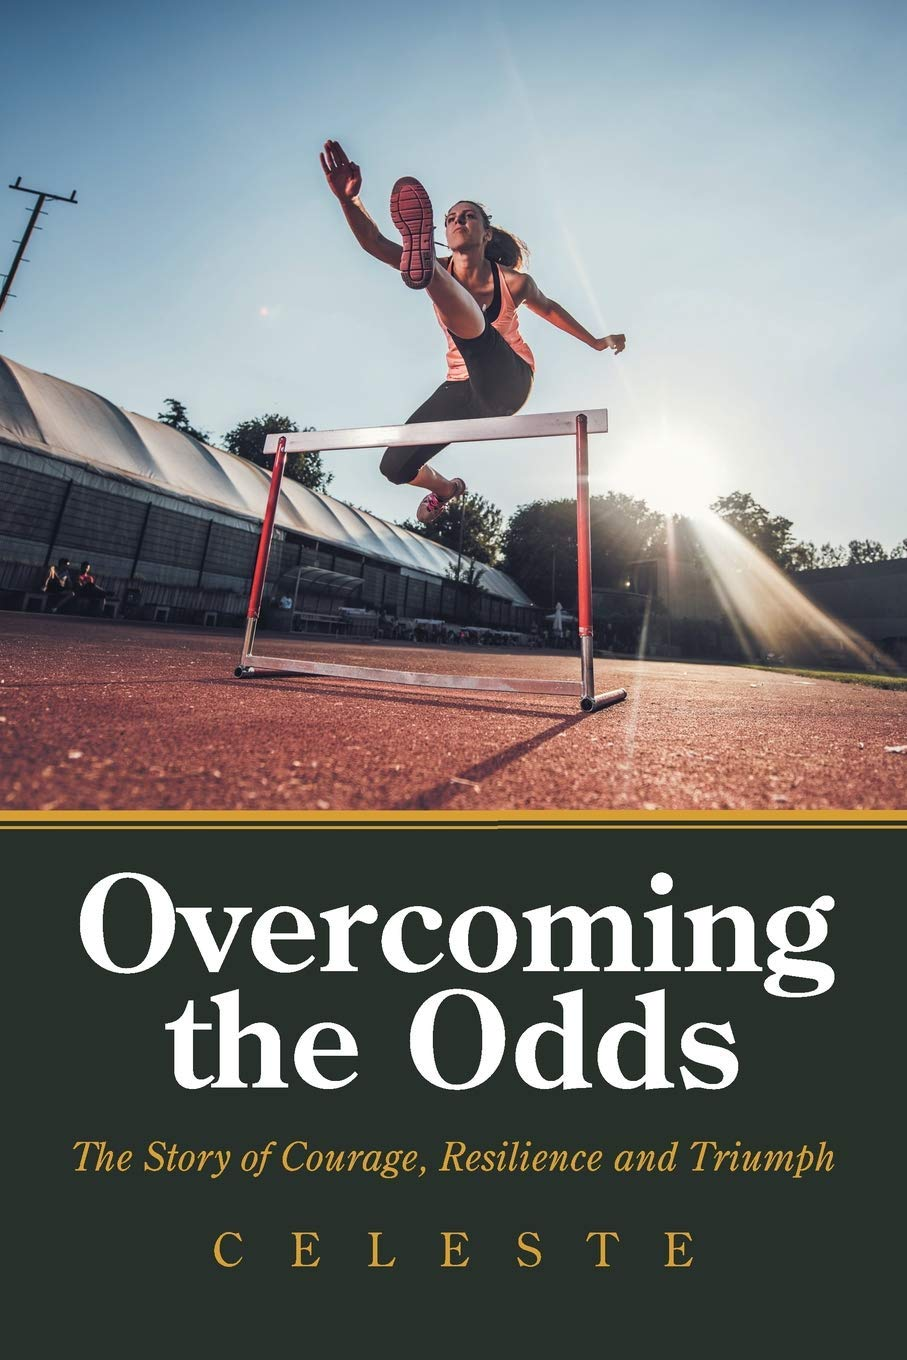 Overcoming the Odds: The Story of Courage, Resilience and Triumph